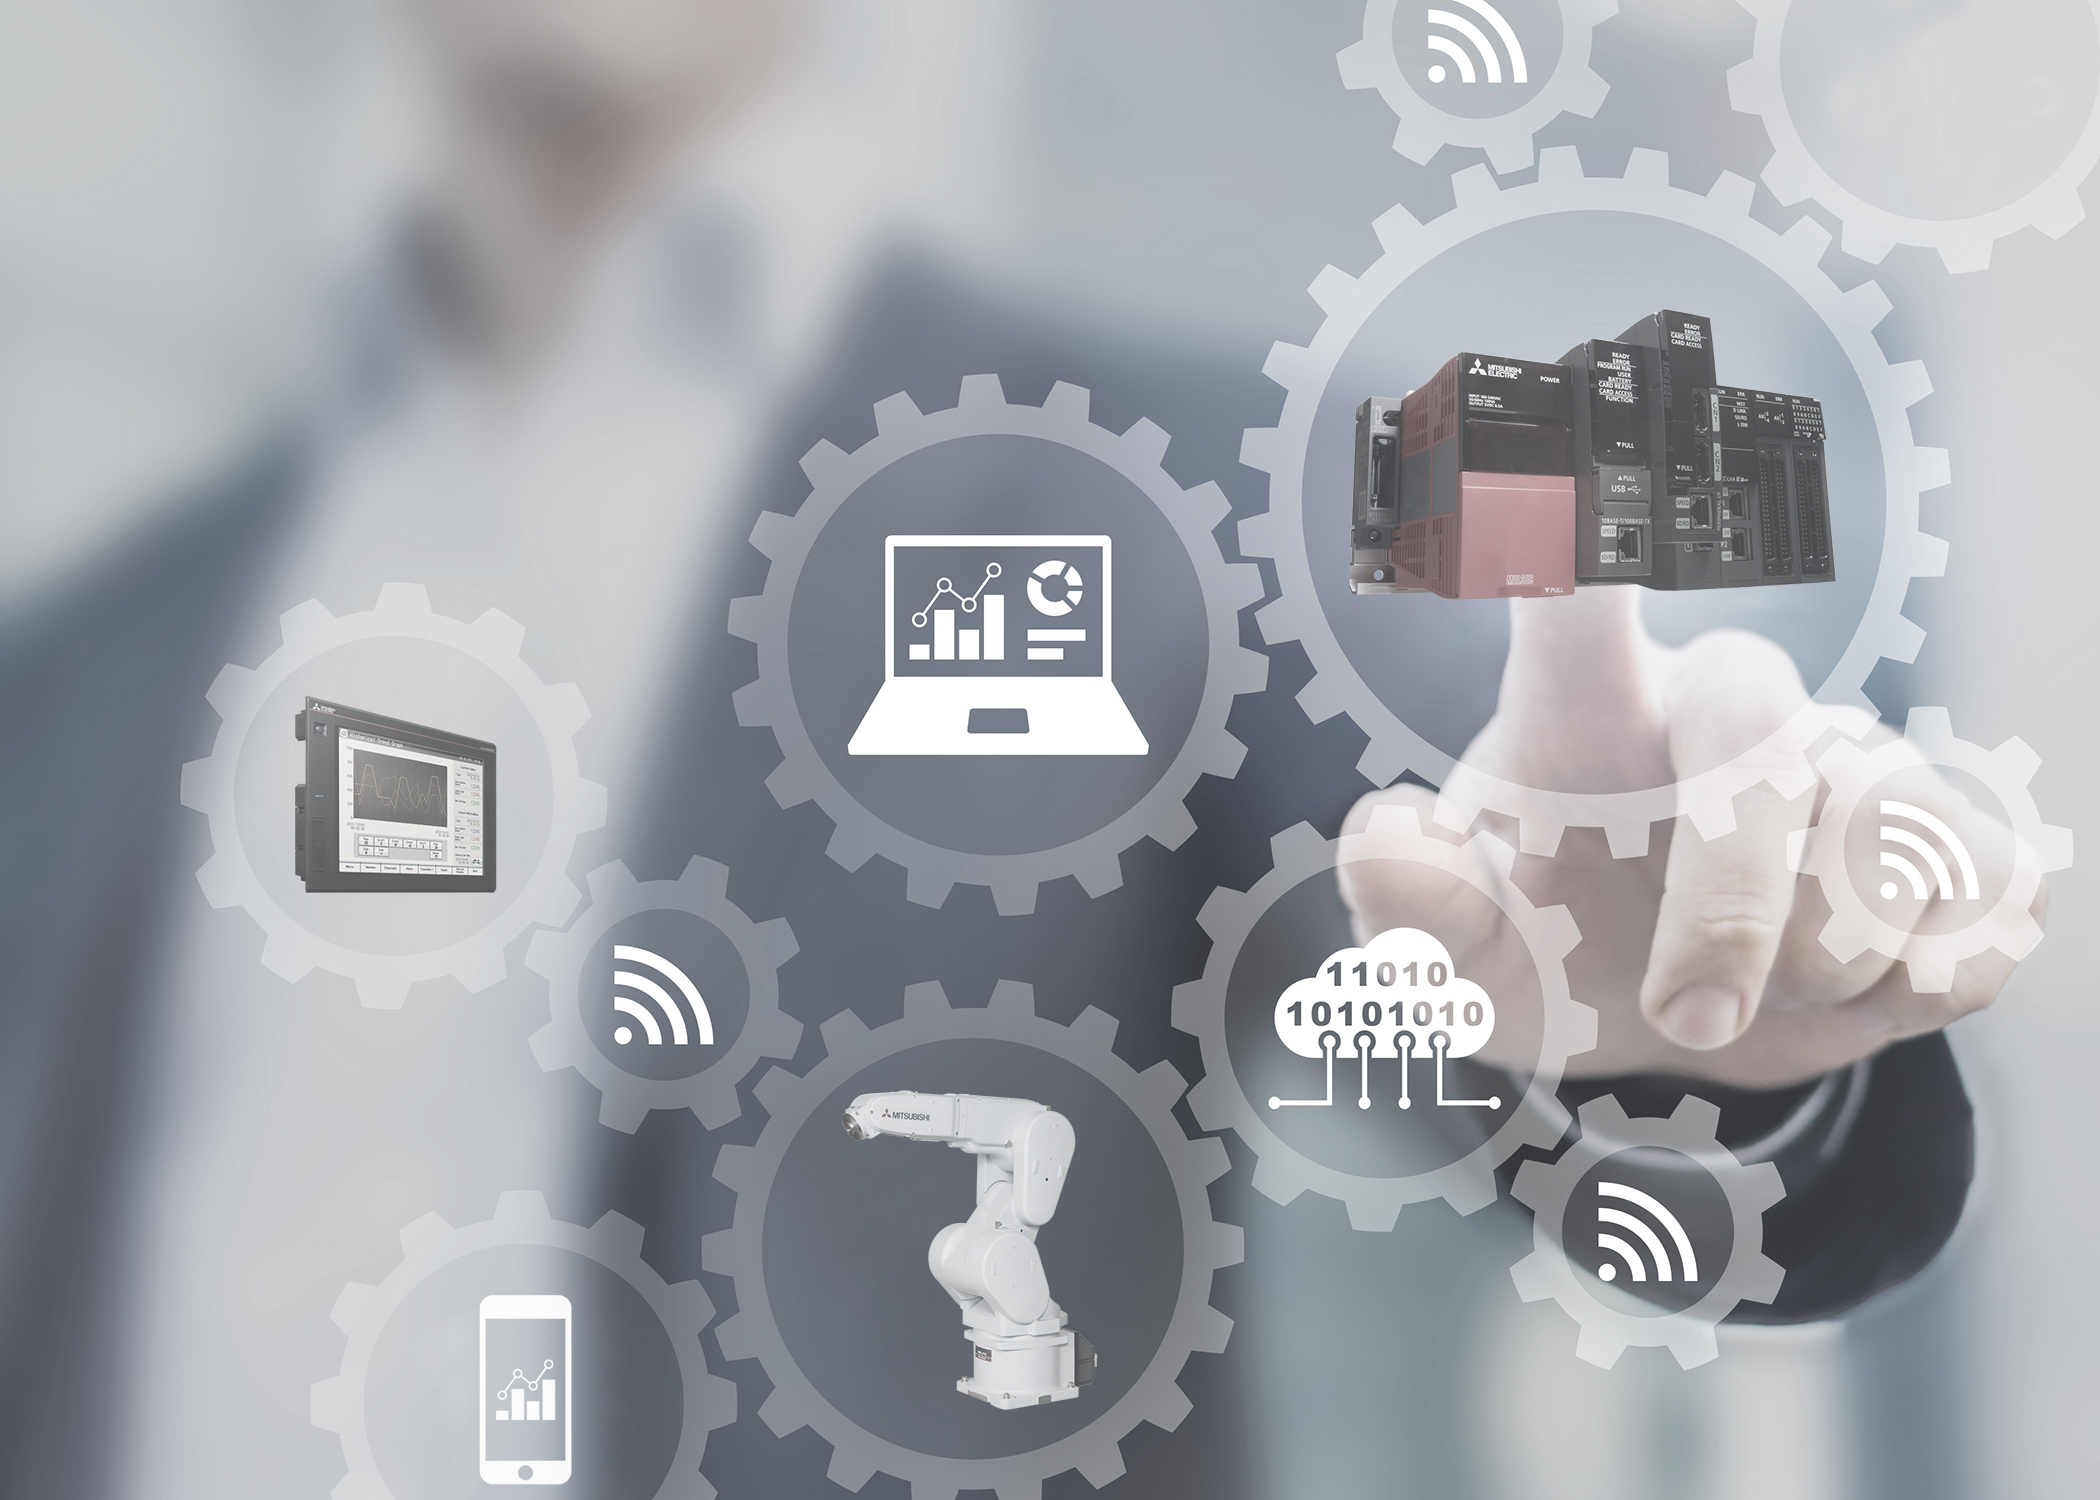 Be smart with digital transformation!